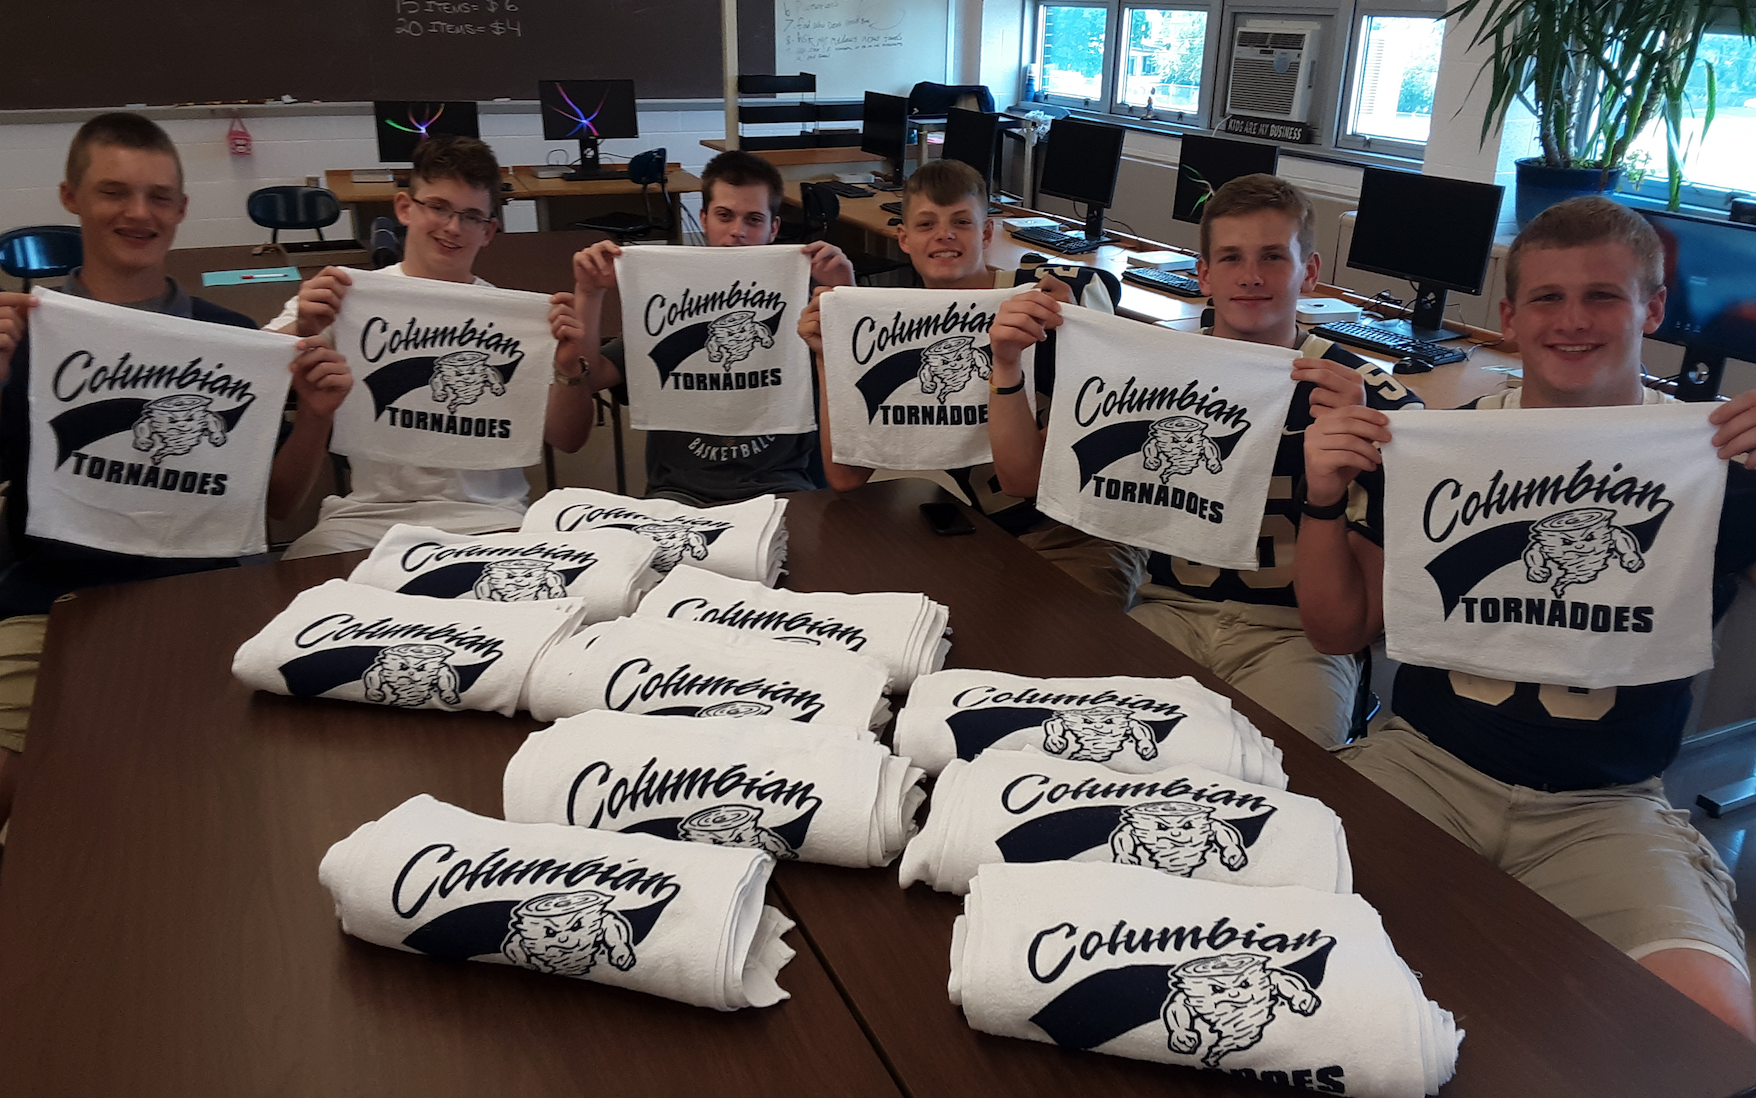 Image of the students displaying their white rally towels in their classroom.